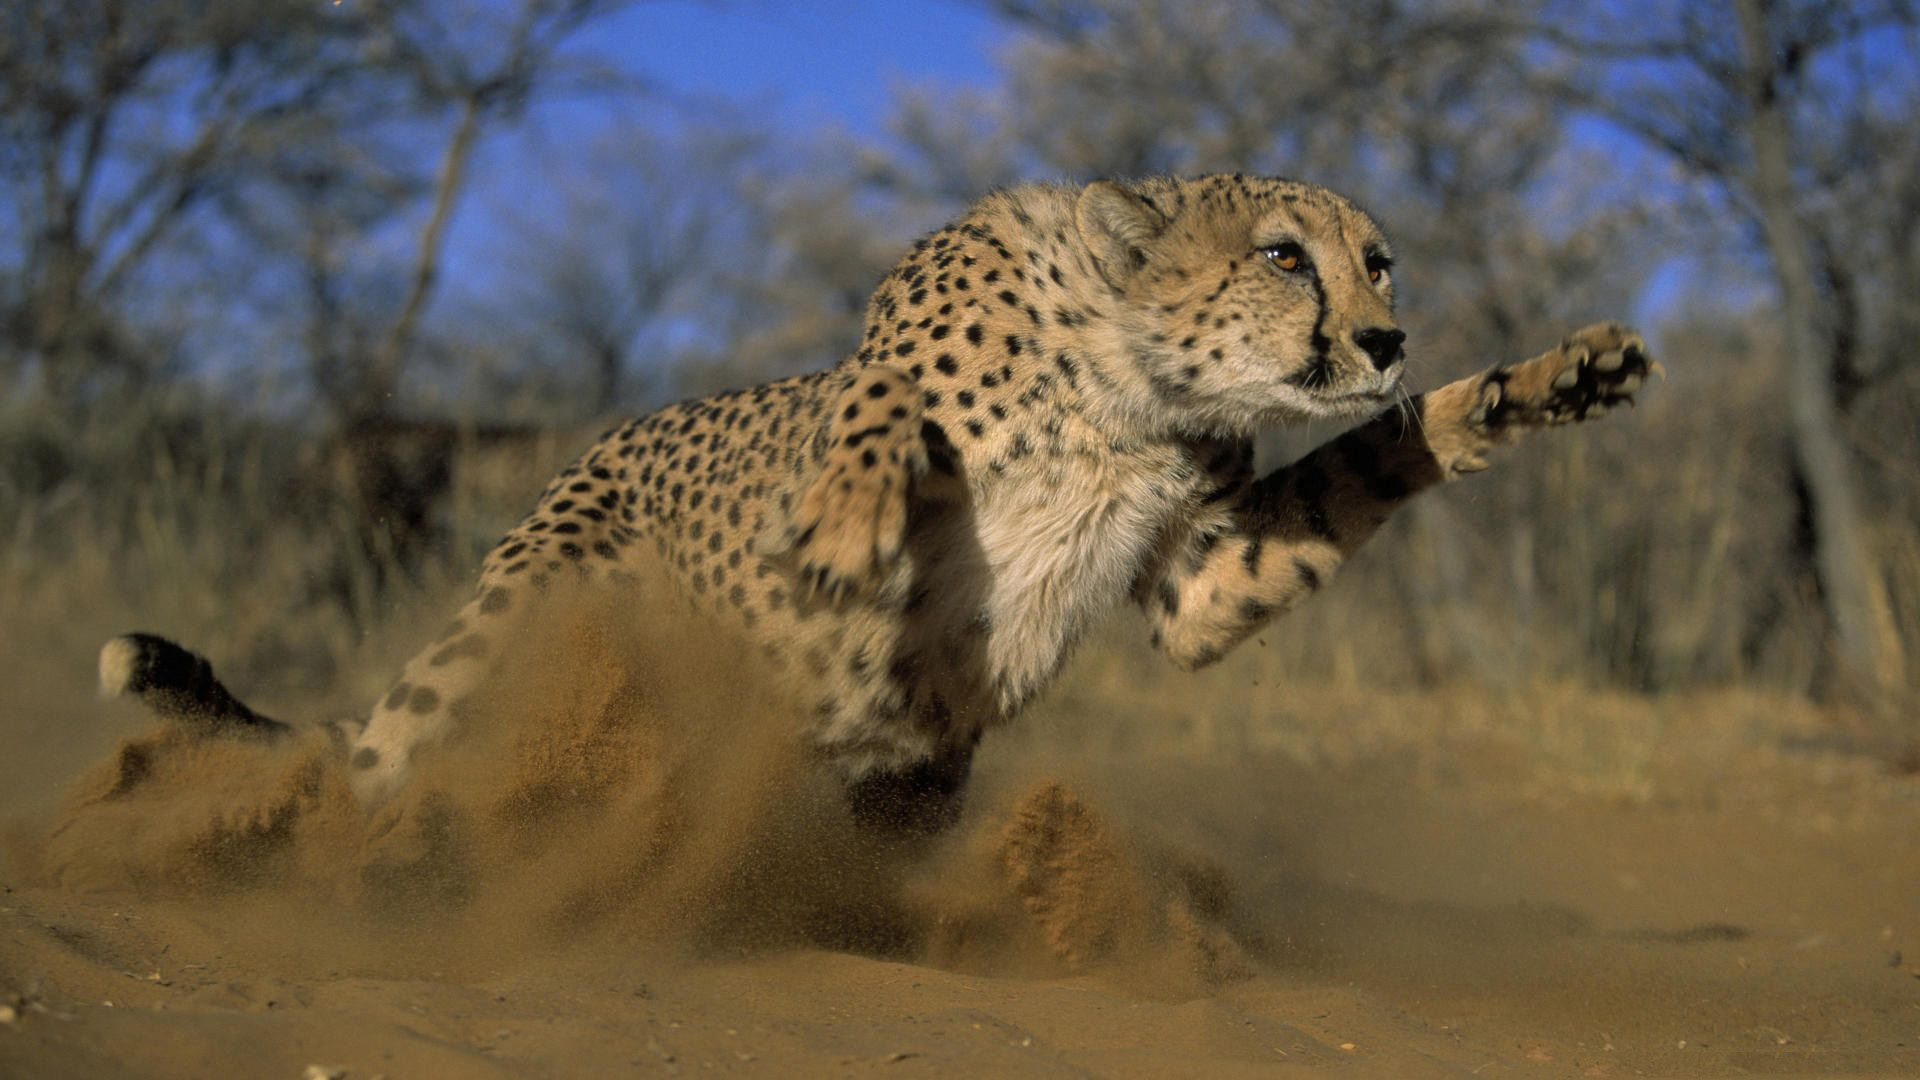 73934 download wallpaper Animals, Grass, Cheetah, Field, Dust, Bounce, Jump, Run Away, Run screensavers and pictures for free